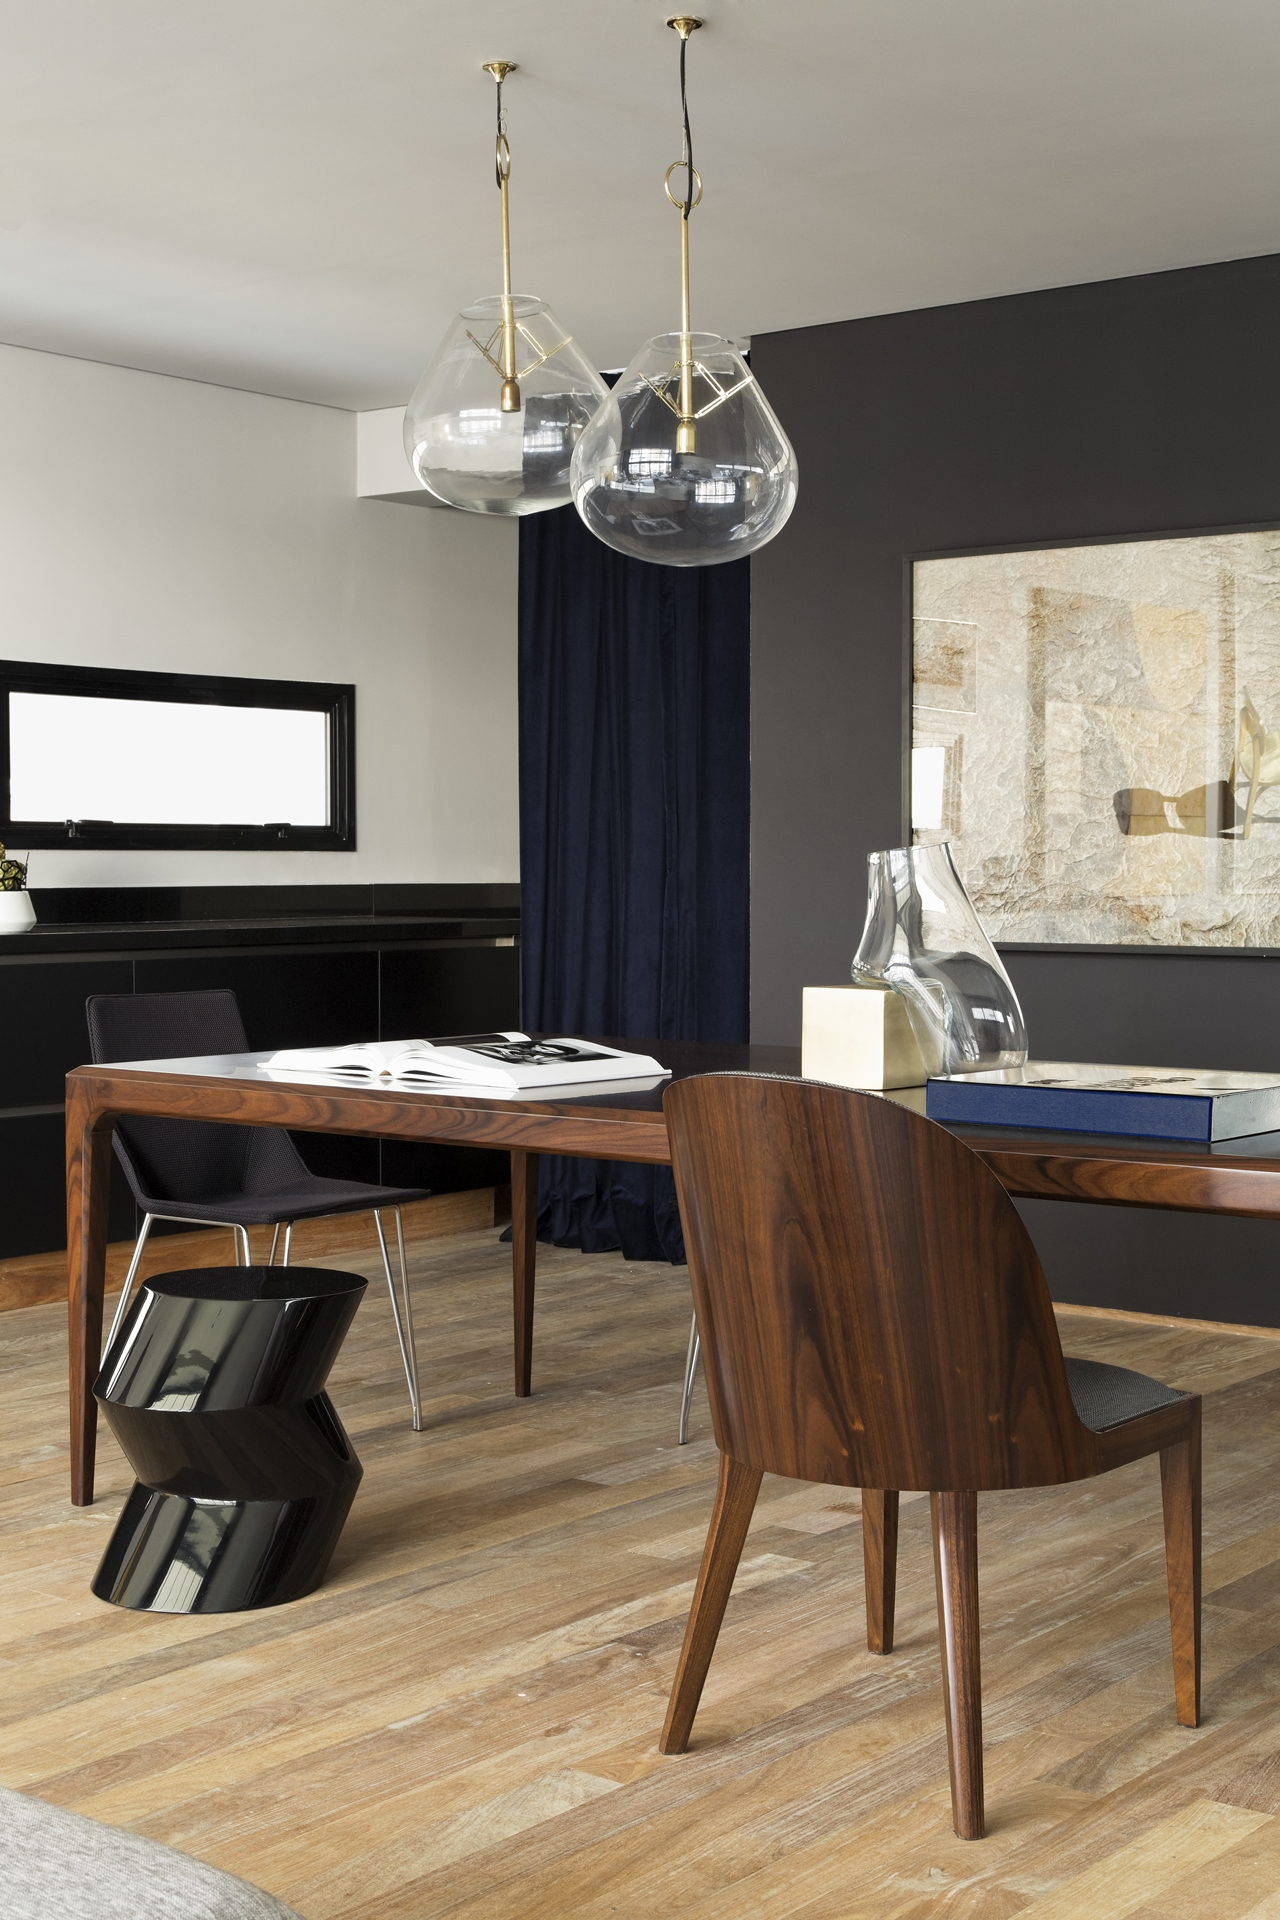 Wooden table ans chair in Itacolomi 445 apartment by Diego Revollo